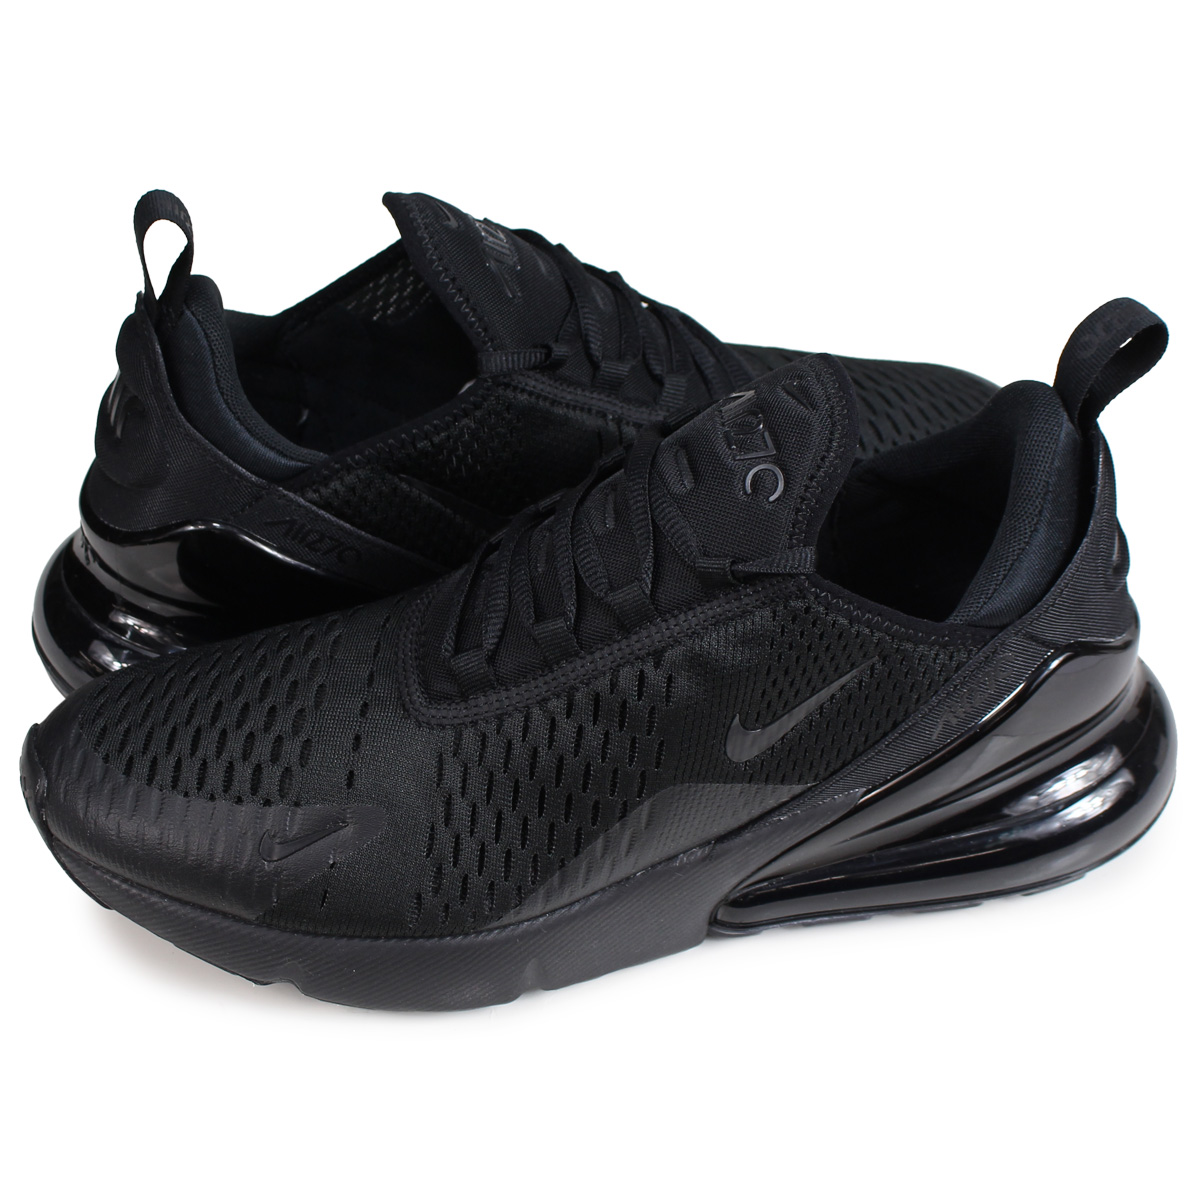 f83c276988e9 Nike NIKE Air Max 270 sneakers men AIR MAX 270 black AH8050-005  load  planned Shinnyu load in reservation product 2 13 containing   192